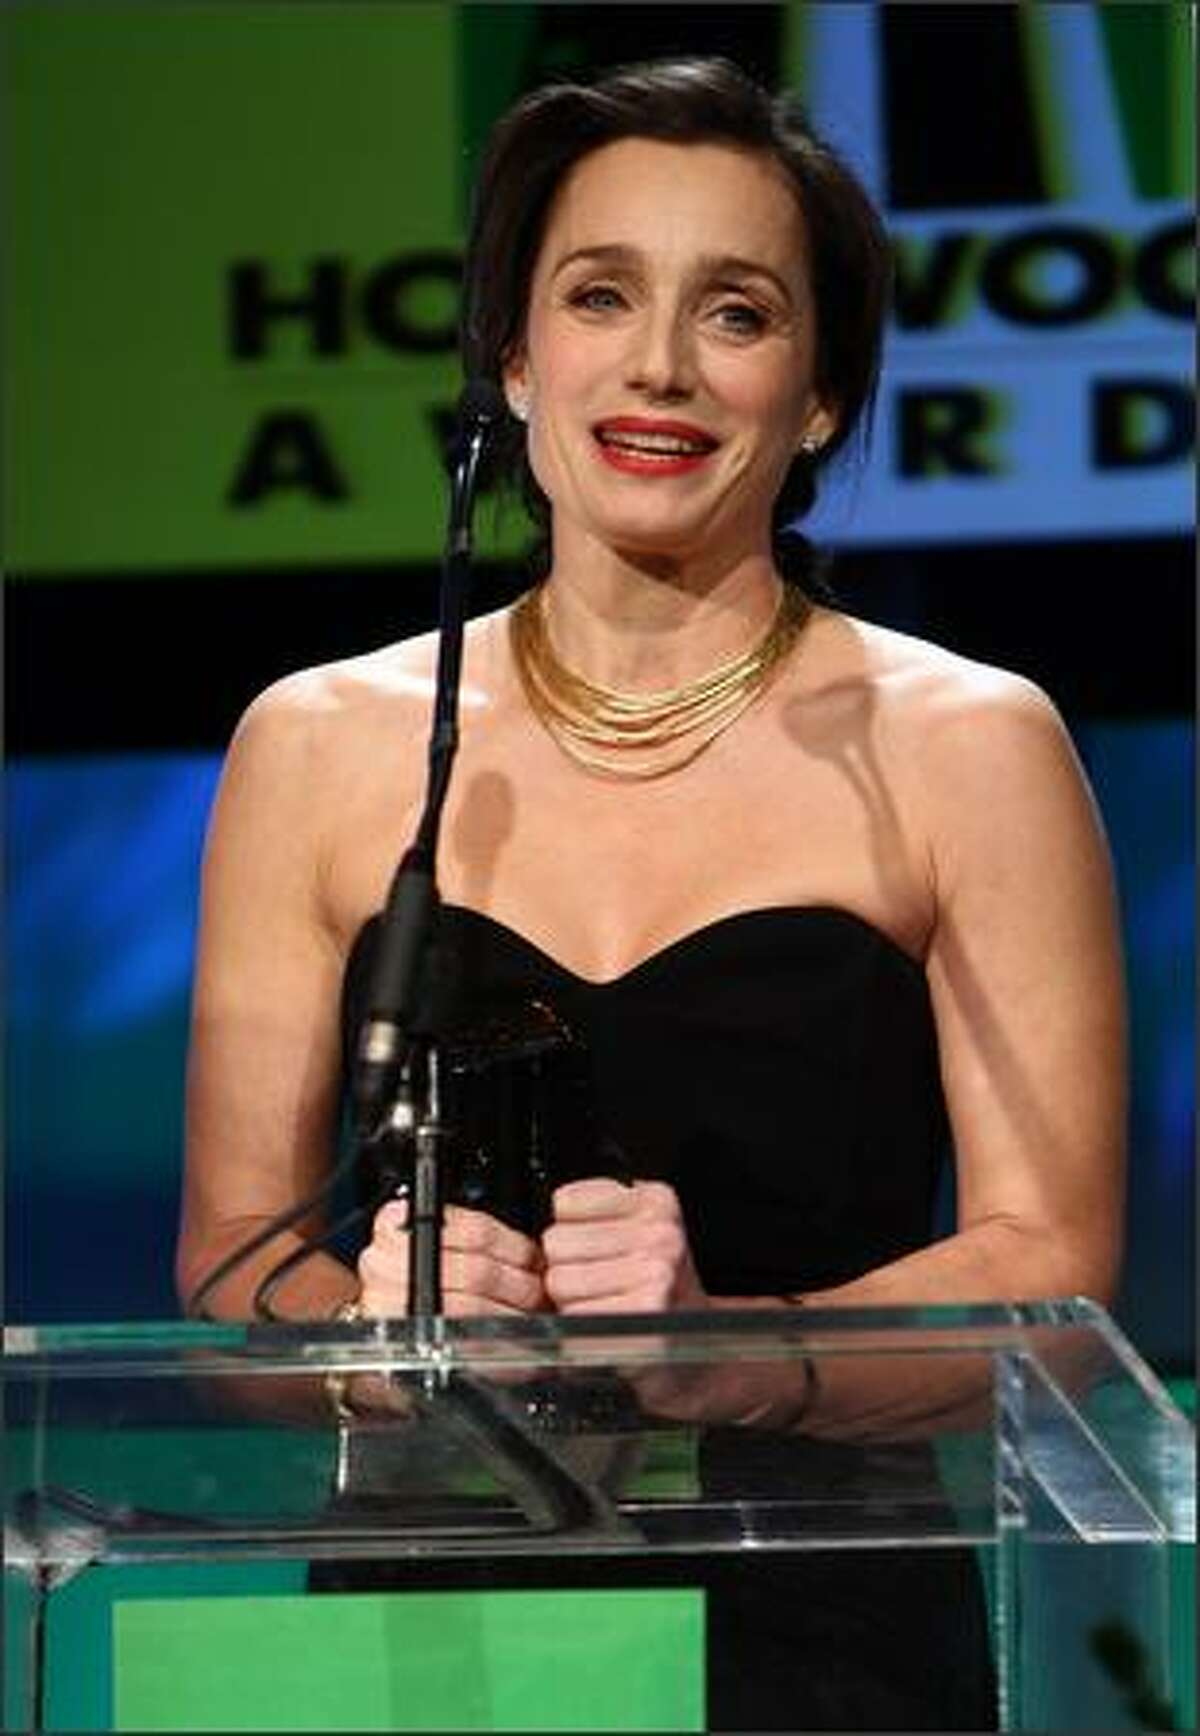 Actress Kristin Scott Thomas accepts her award for Hollywood Actress of the Year Award onstage during the Hollywood Film Festival's Gala Ceremony held at Beverly Hilton Hotel on Tuesday in Beverly Hills, Calif.